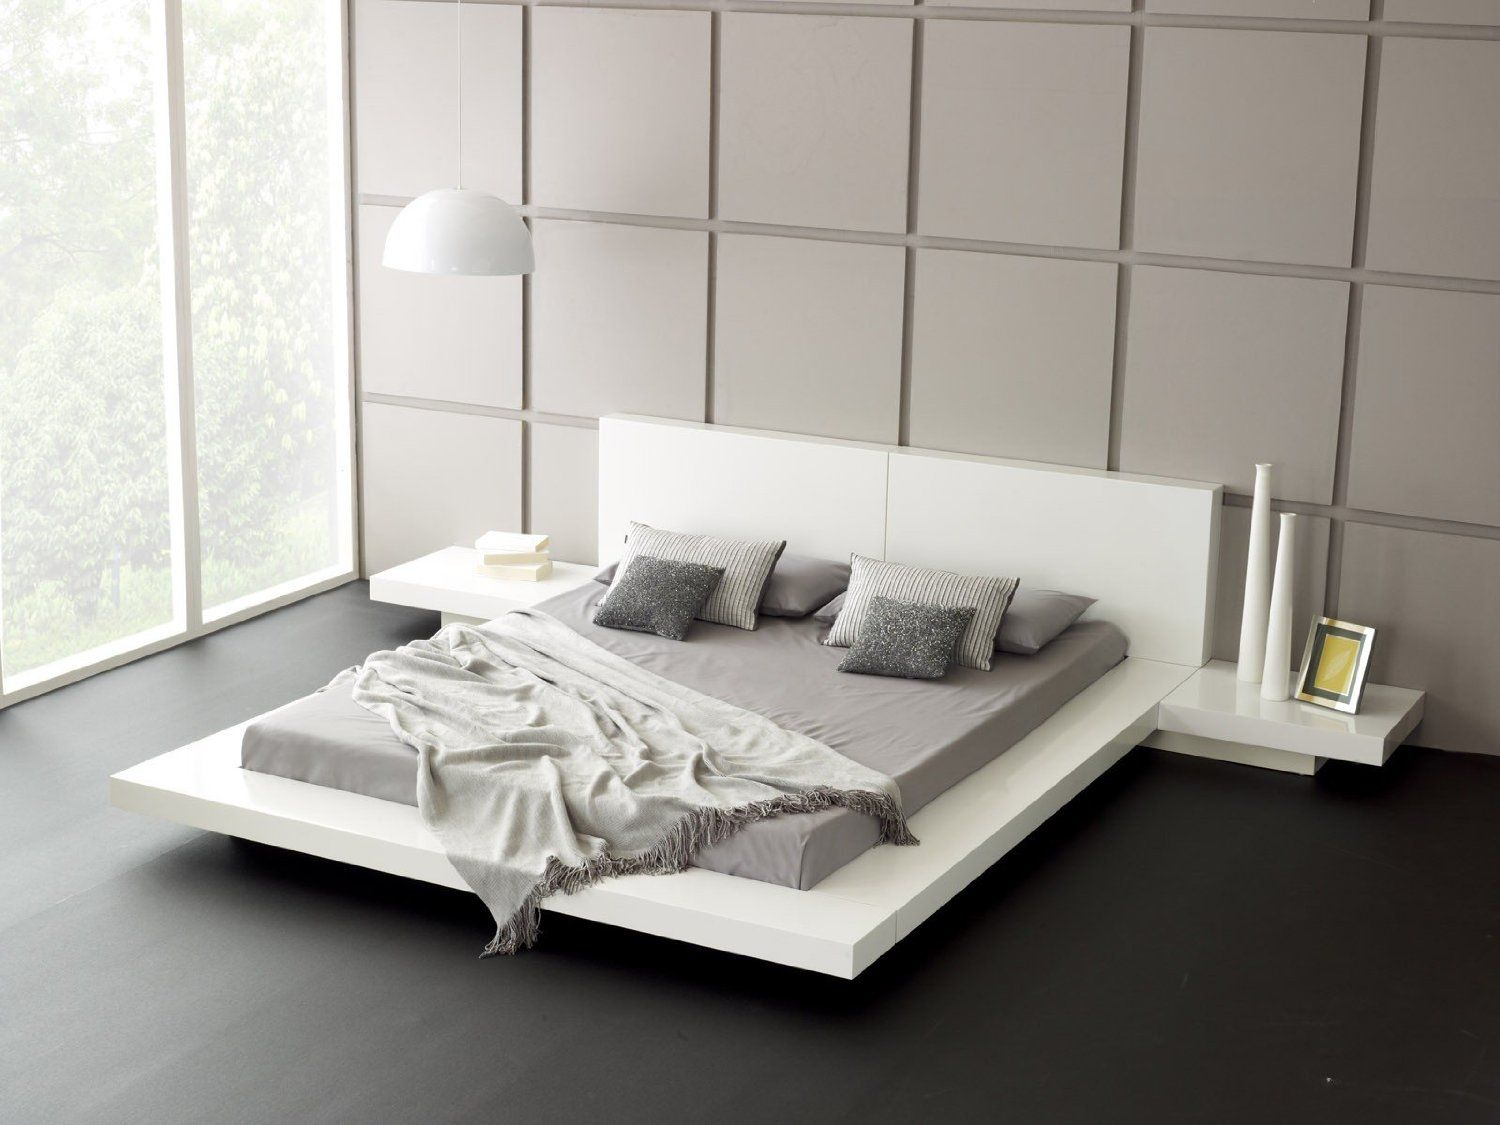 japanese style platform bed | Japanese Platform Bed Frames: Practicality,  Style and Pure Zen